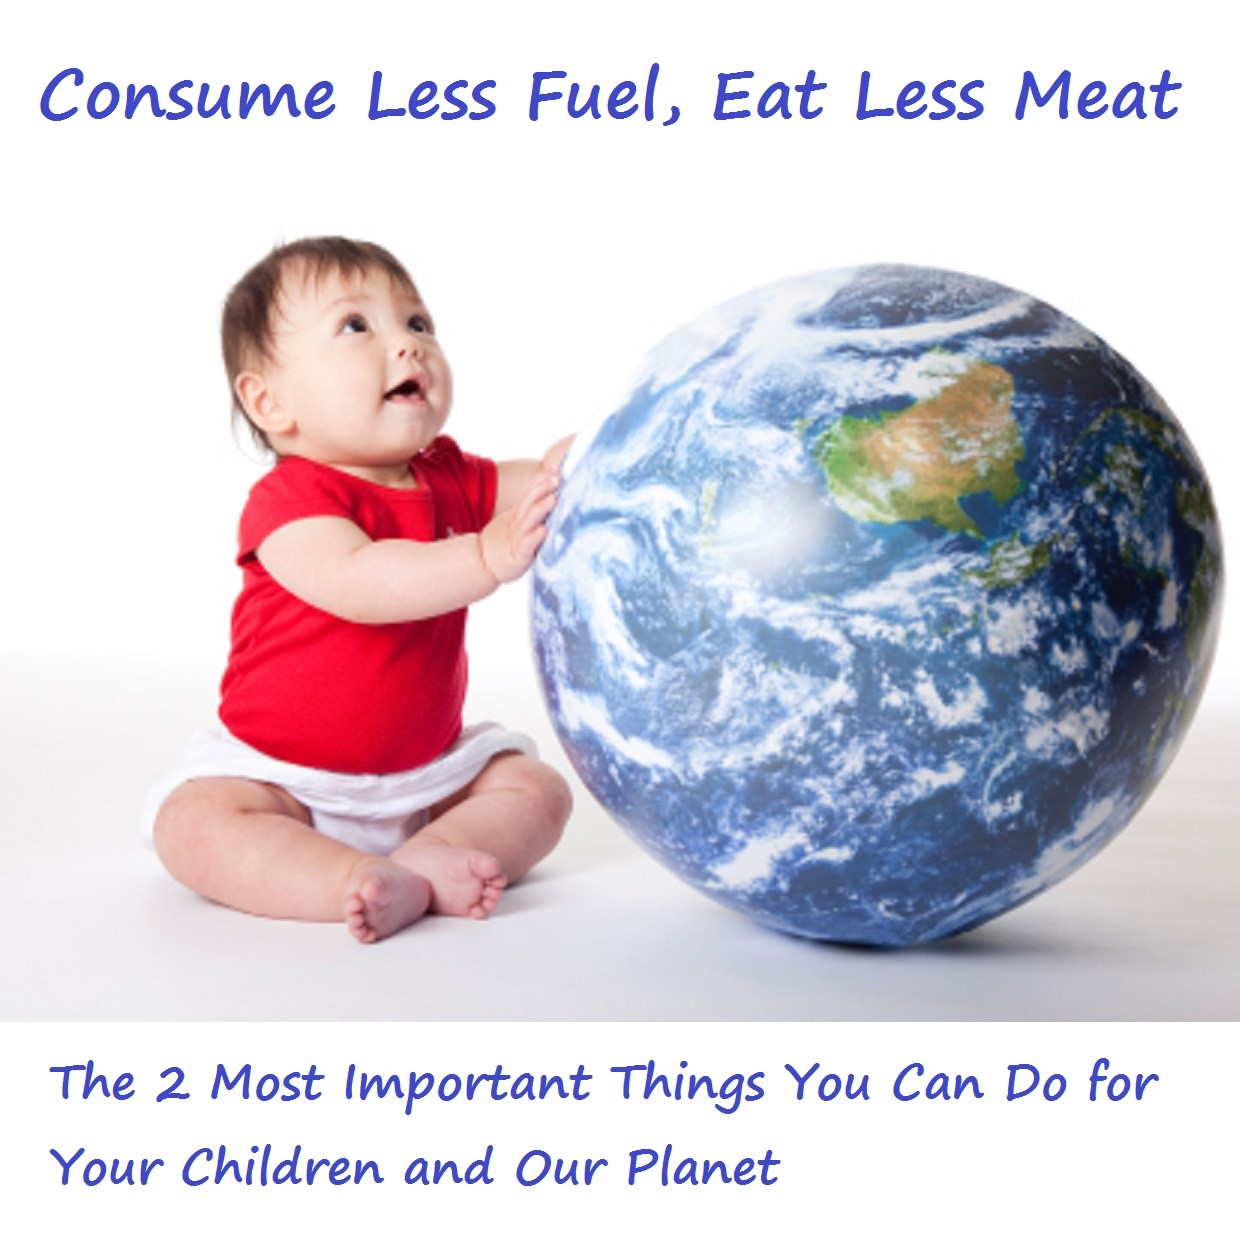 Consume Less Fuel, Eat Less Meat